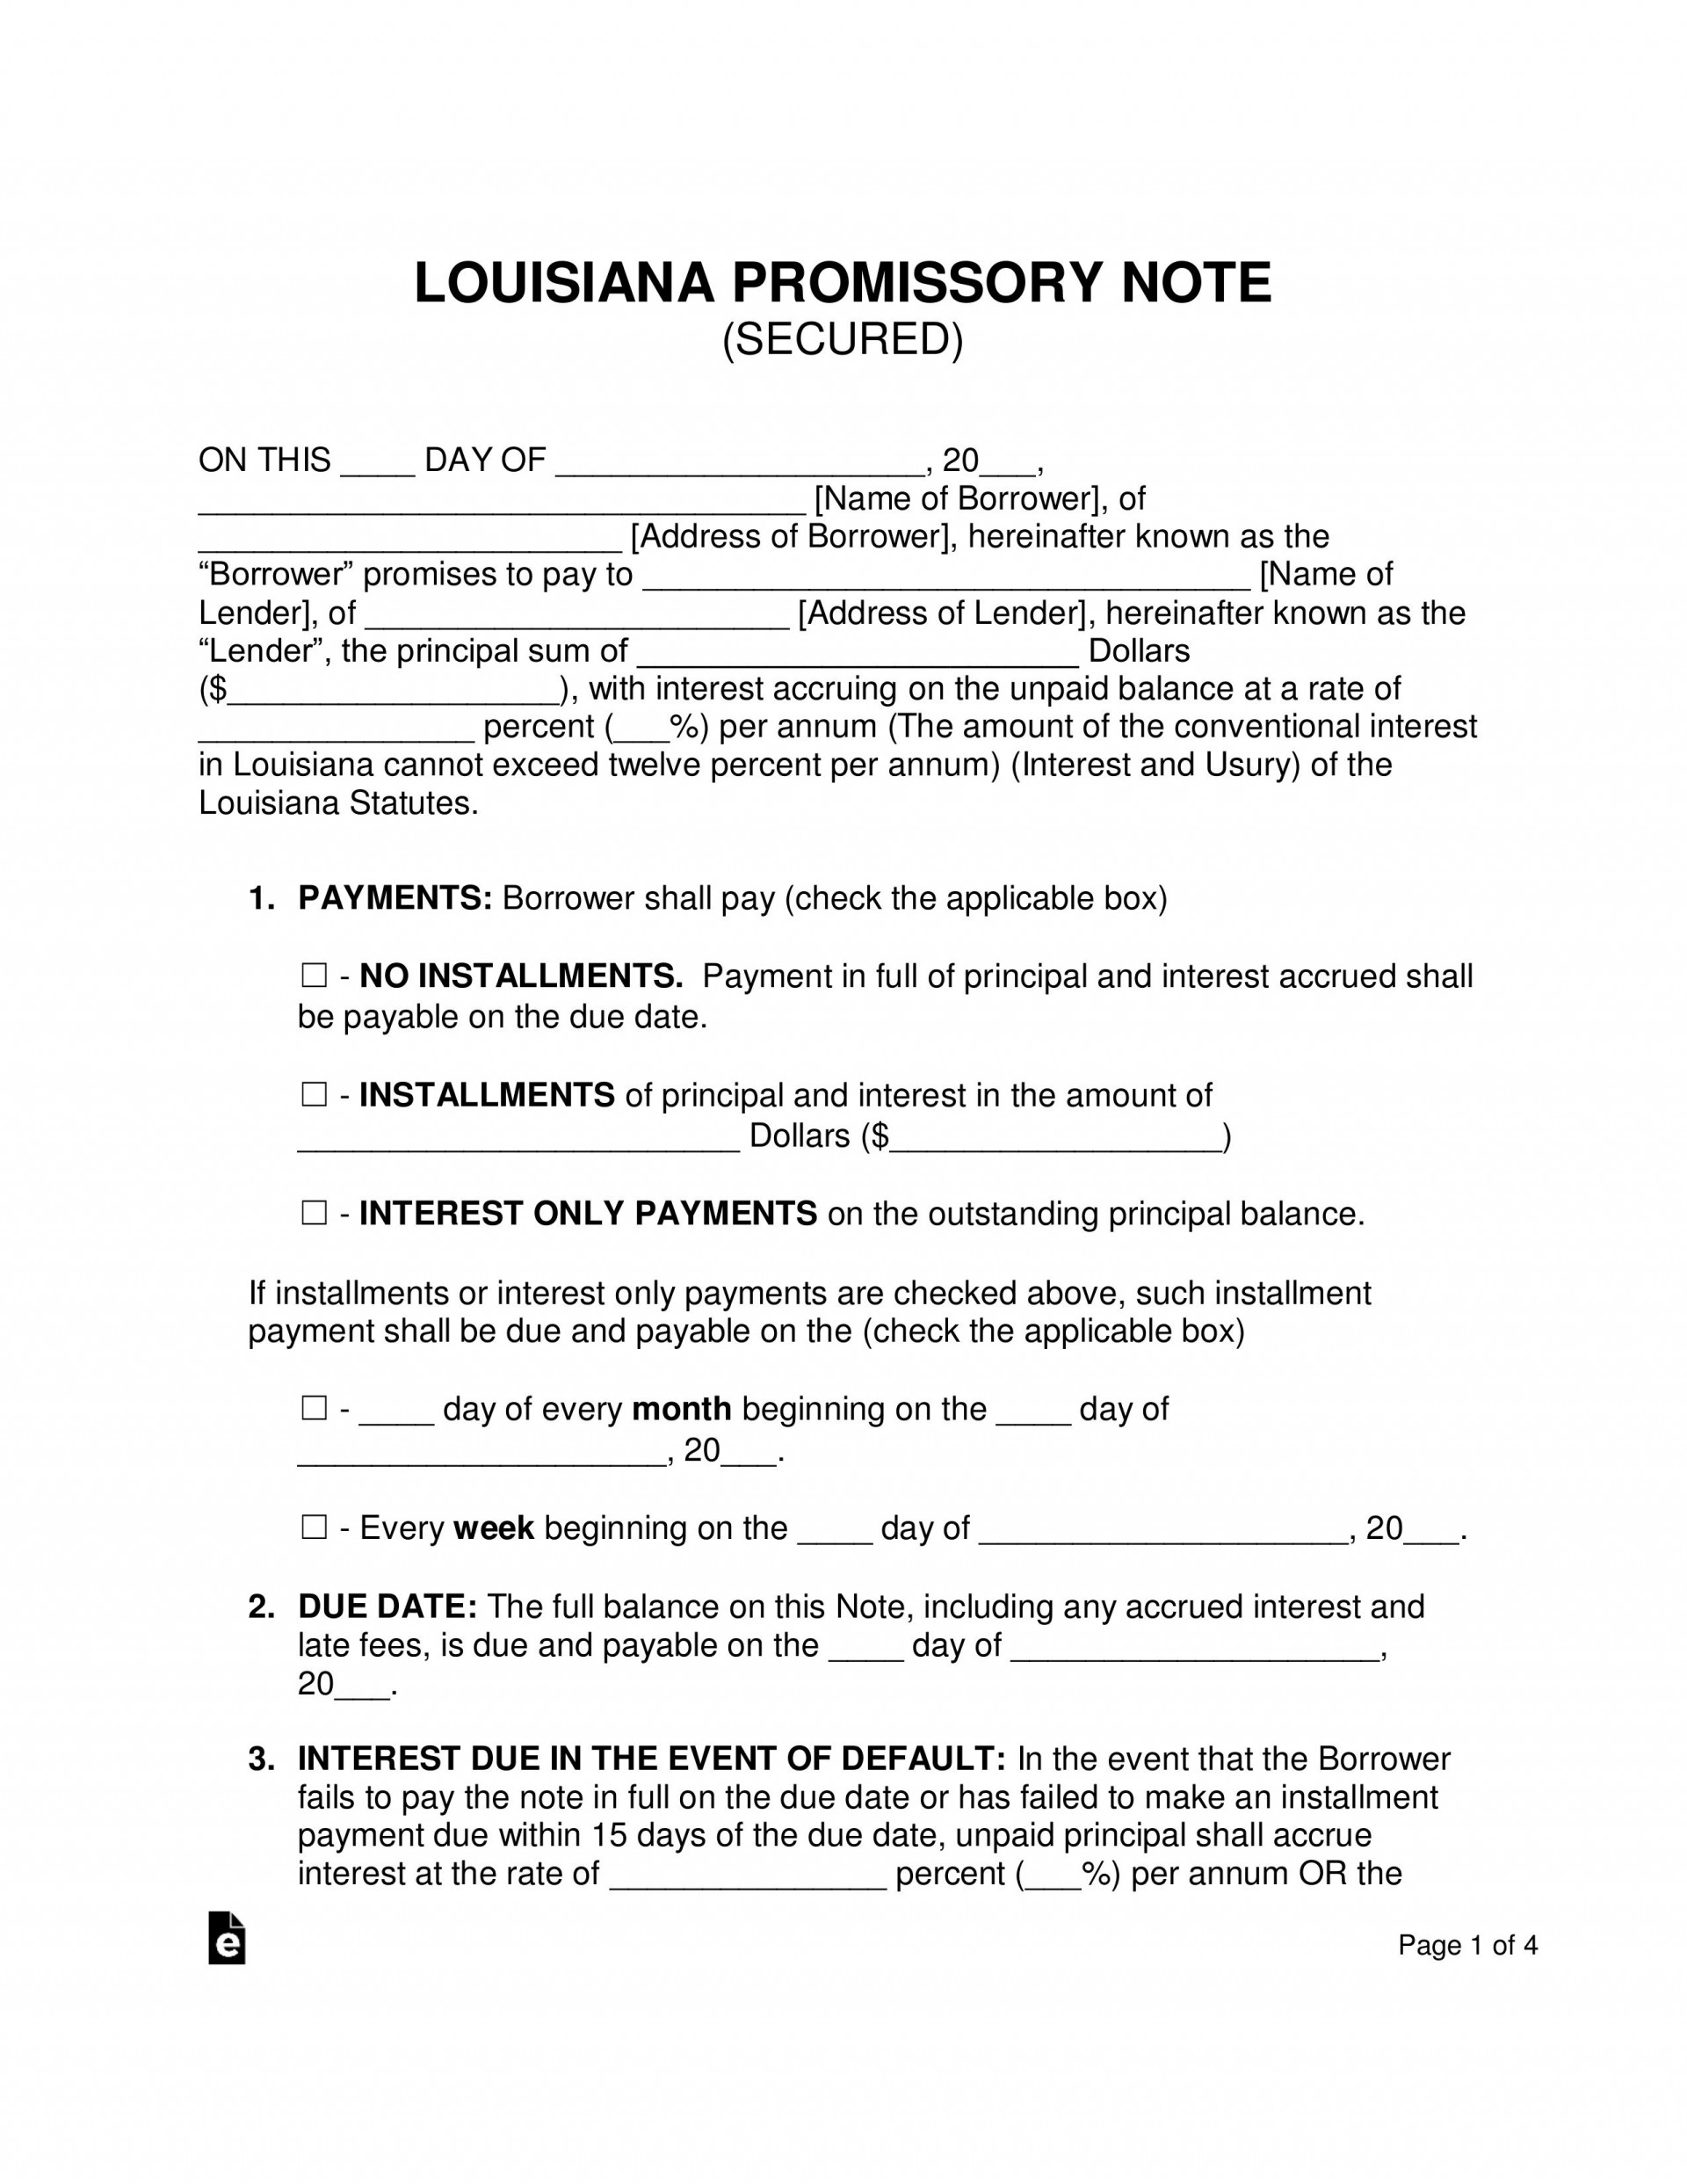 002 Wonderful Loan Promissory Note Template High Resolution  Ppp Form Personal Format Student1920